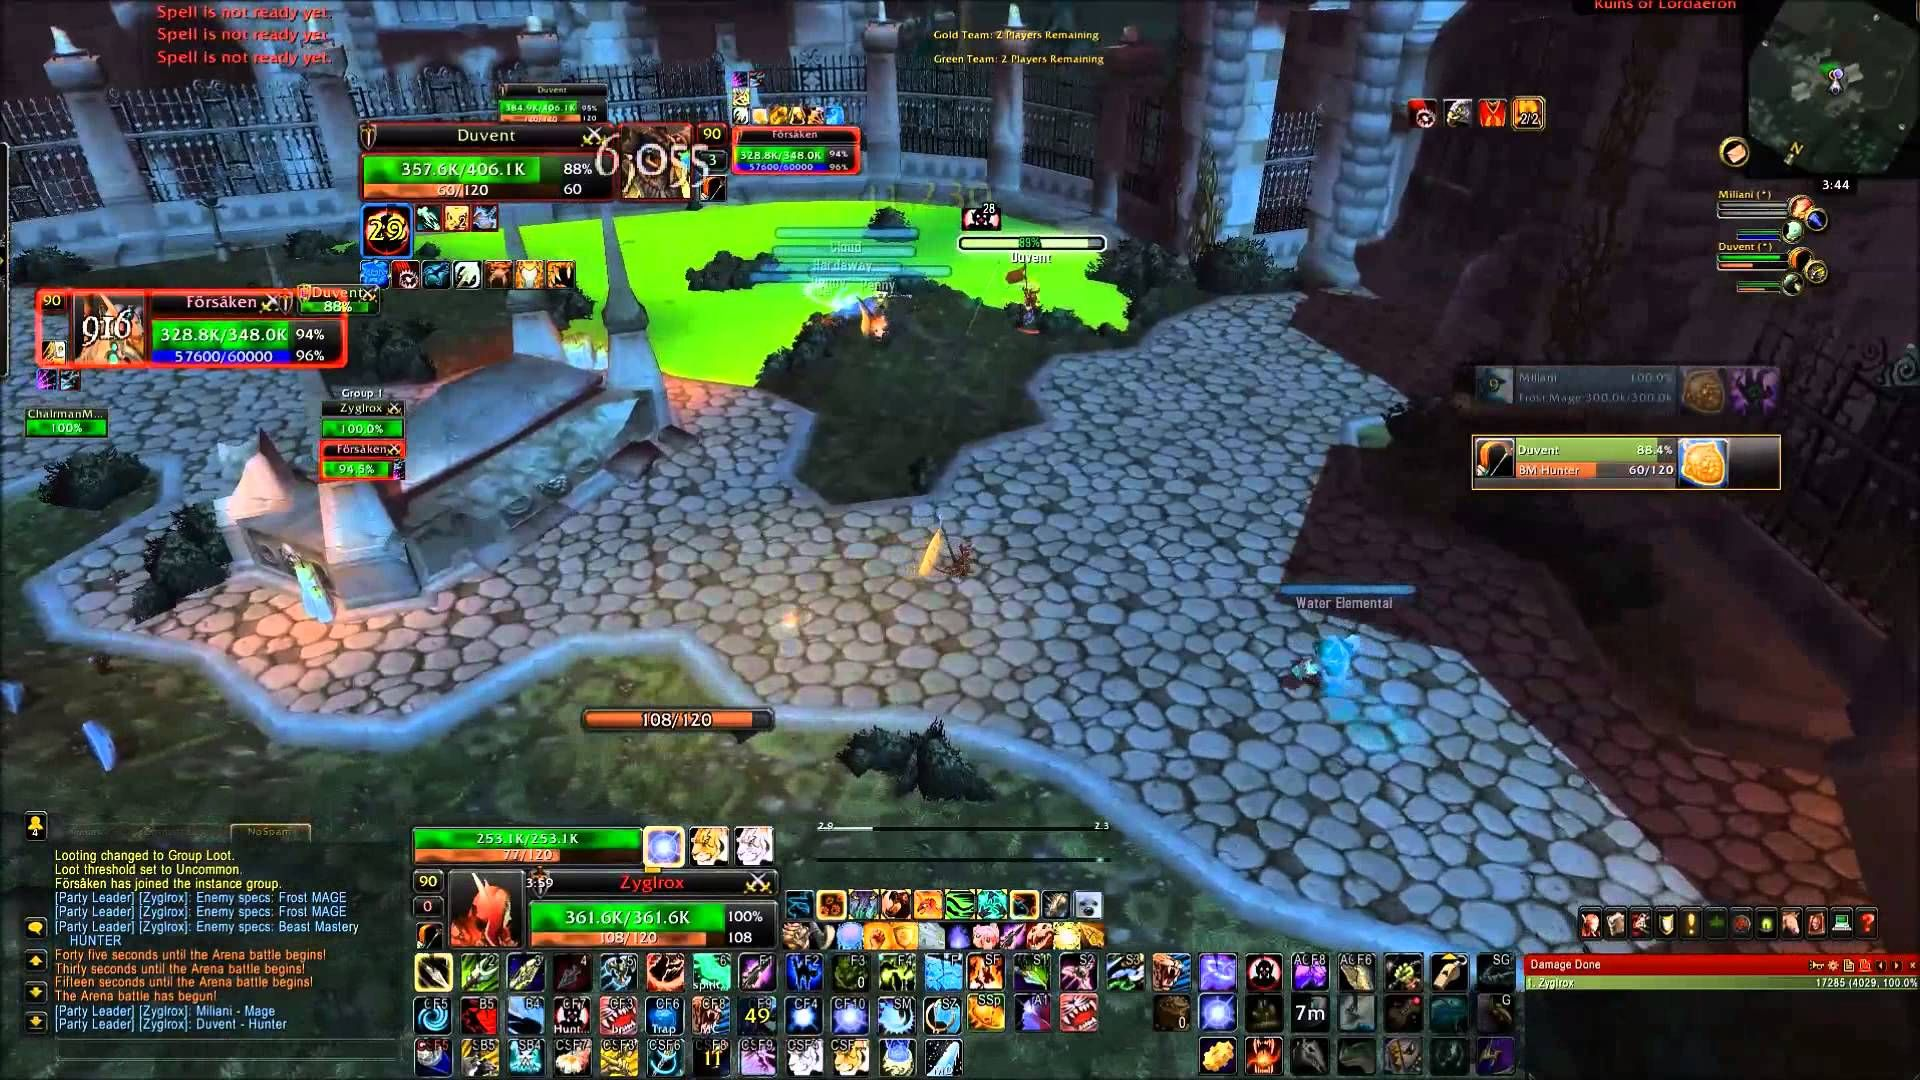 Wow Bm Hunter Gameplay 7 2v2 S Hunter Ret Half Leveling Gear Wow Leveling Guide For All Wow Players Warcraft World Of Warcraft Gameplay